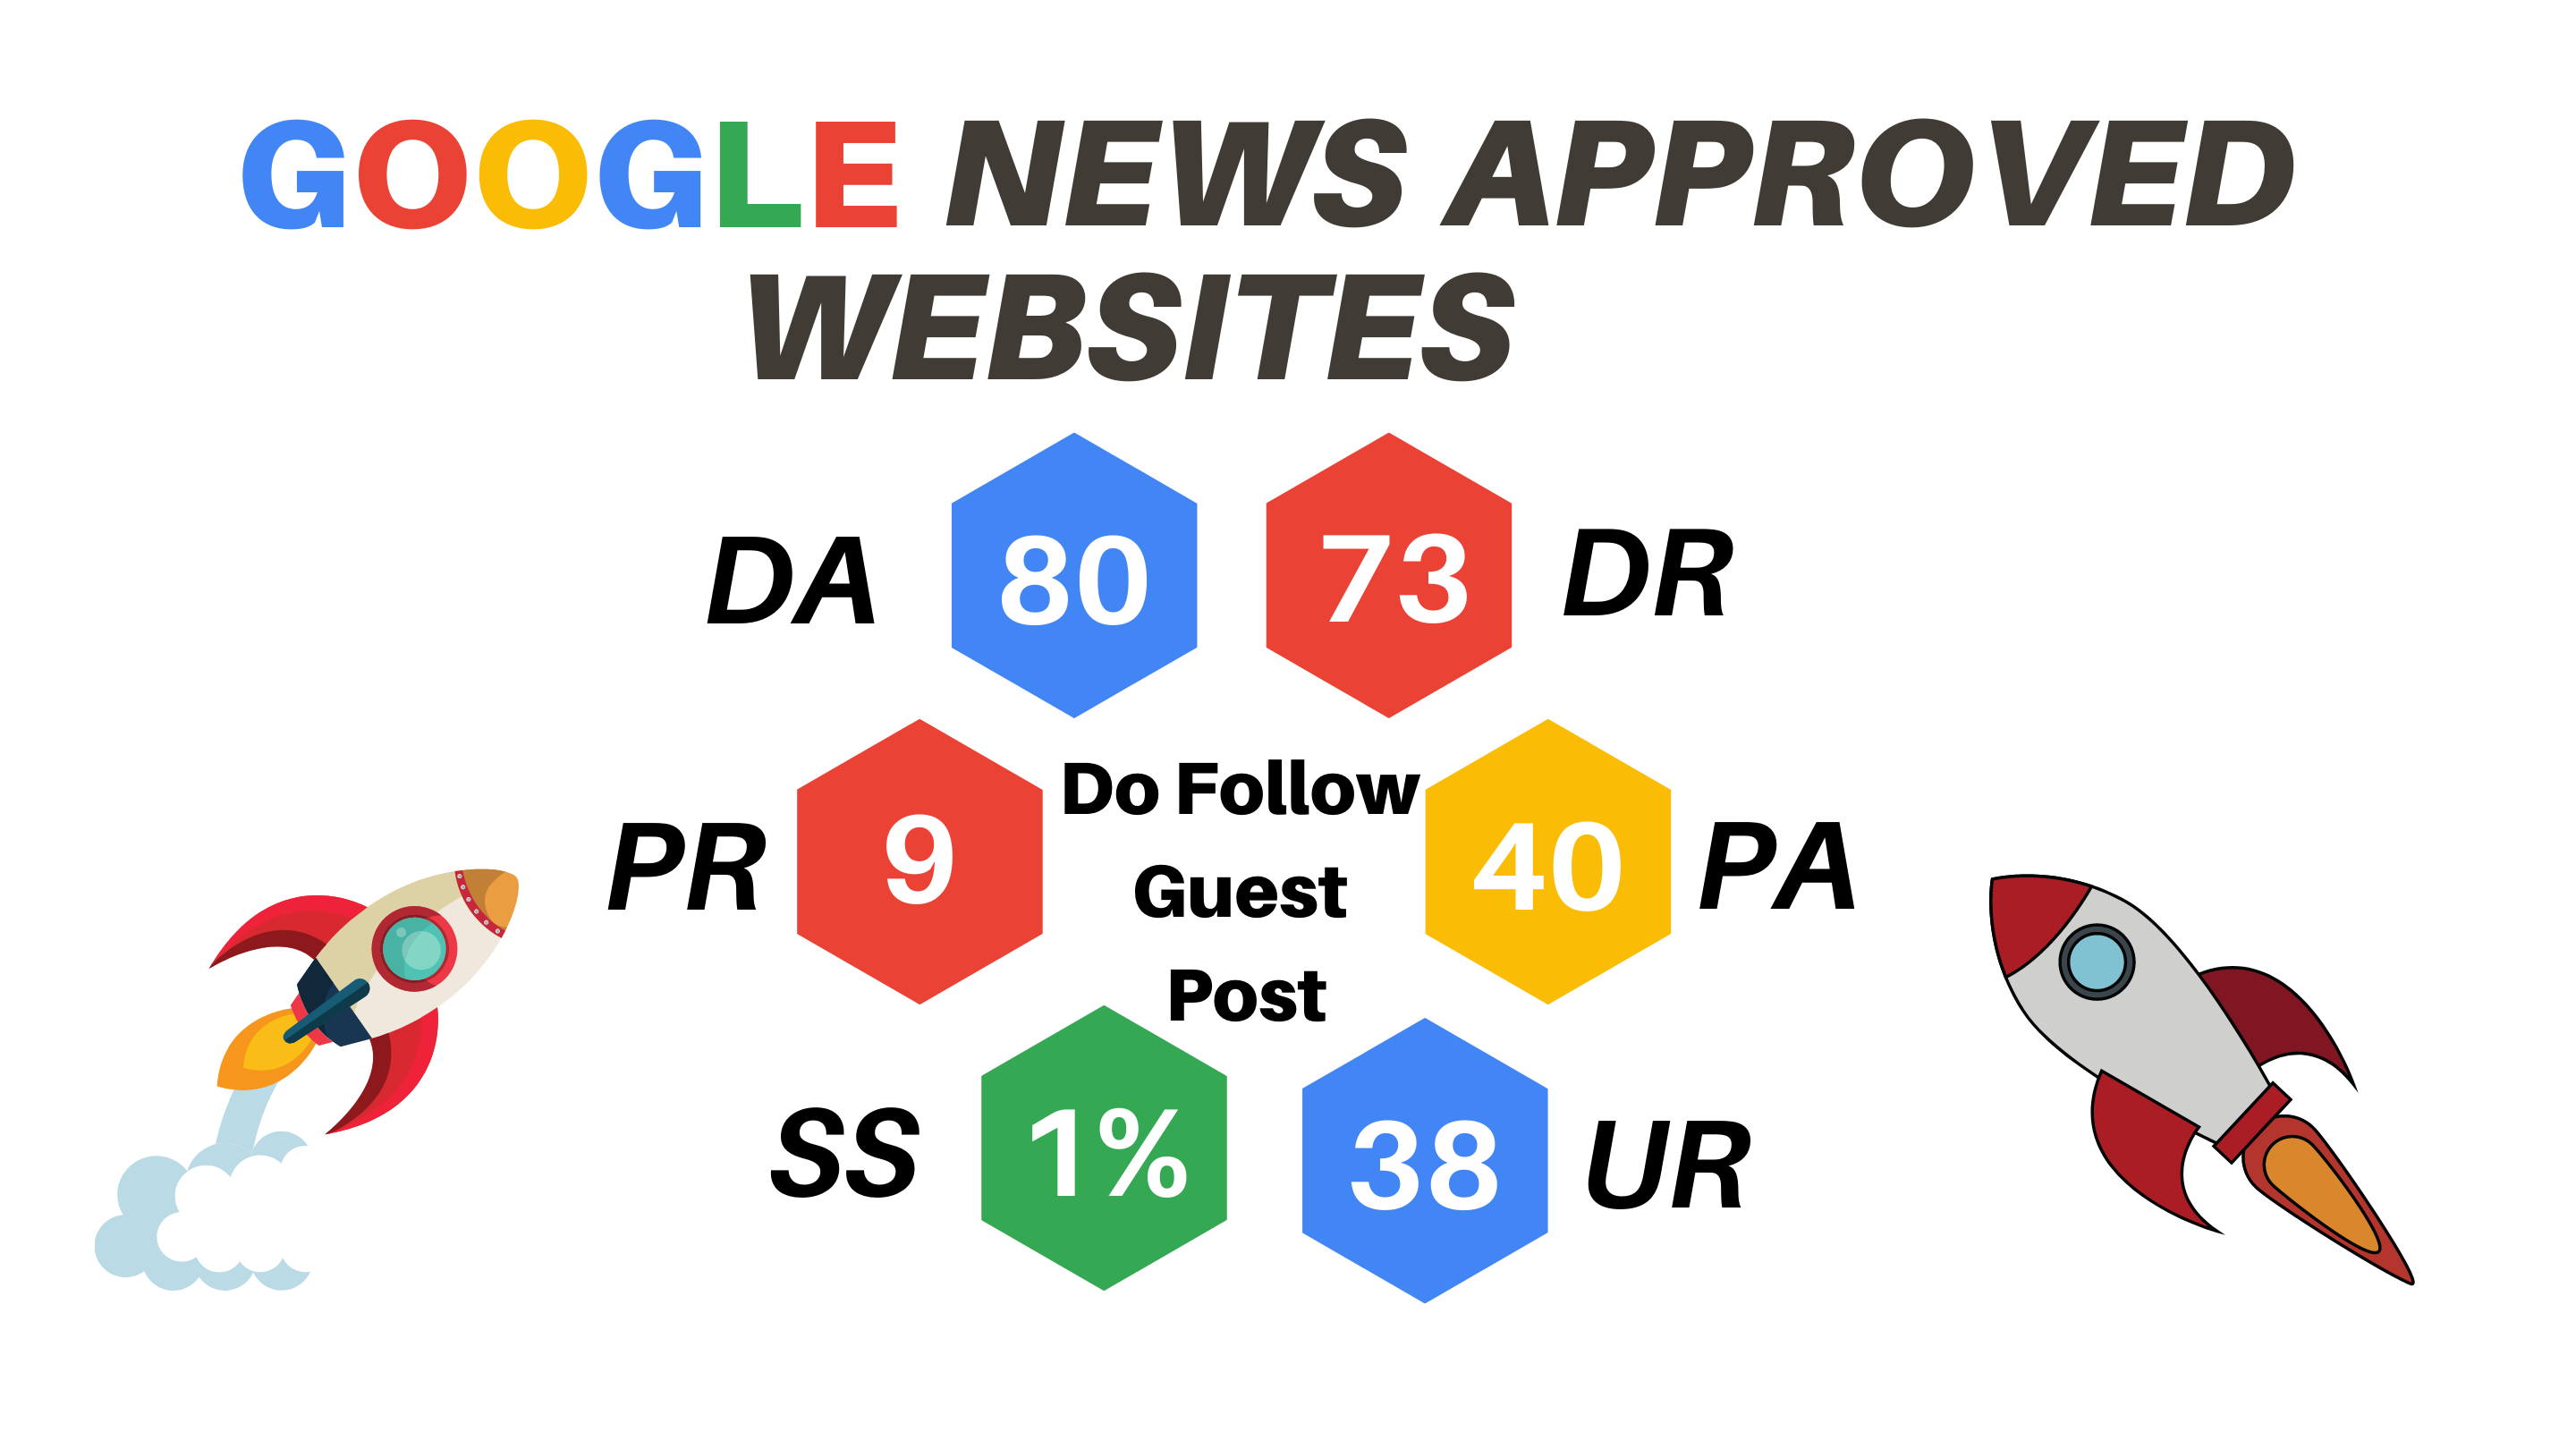 Get ONE guest post from google news approved websites to super rank your website